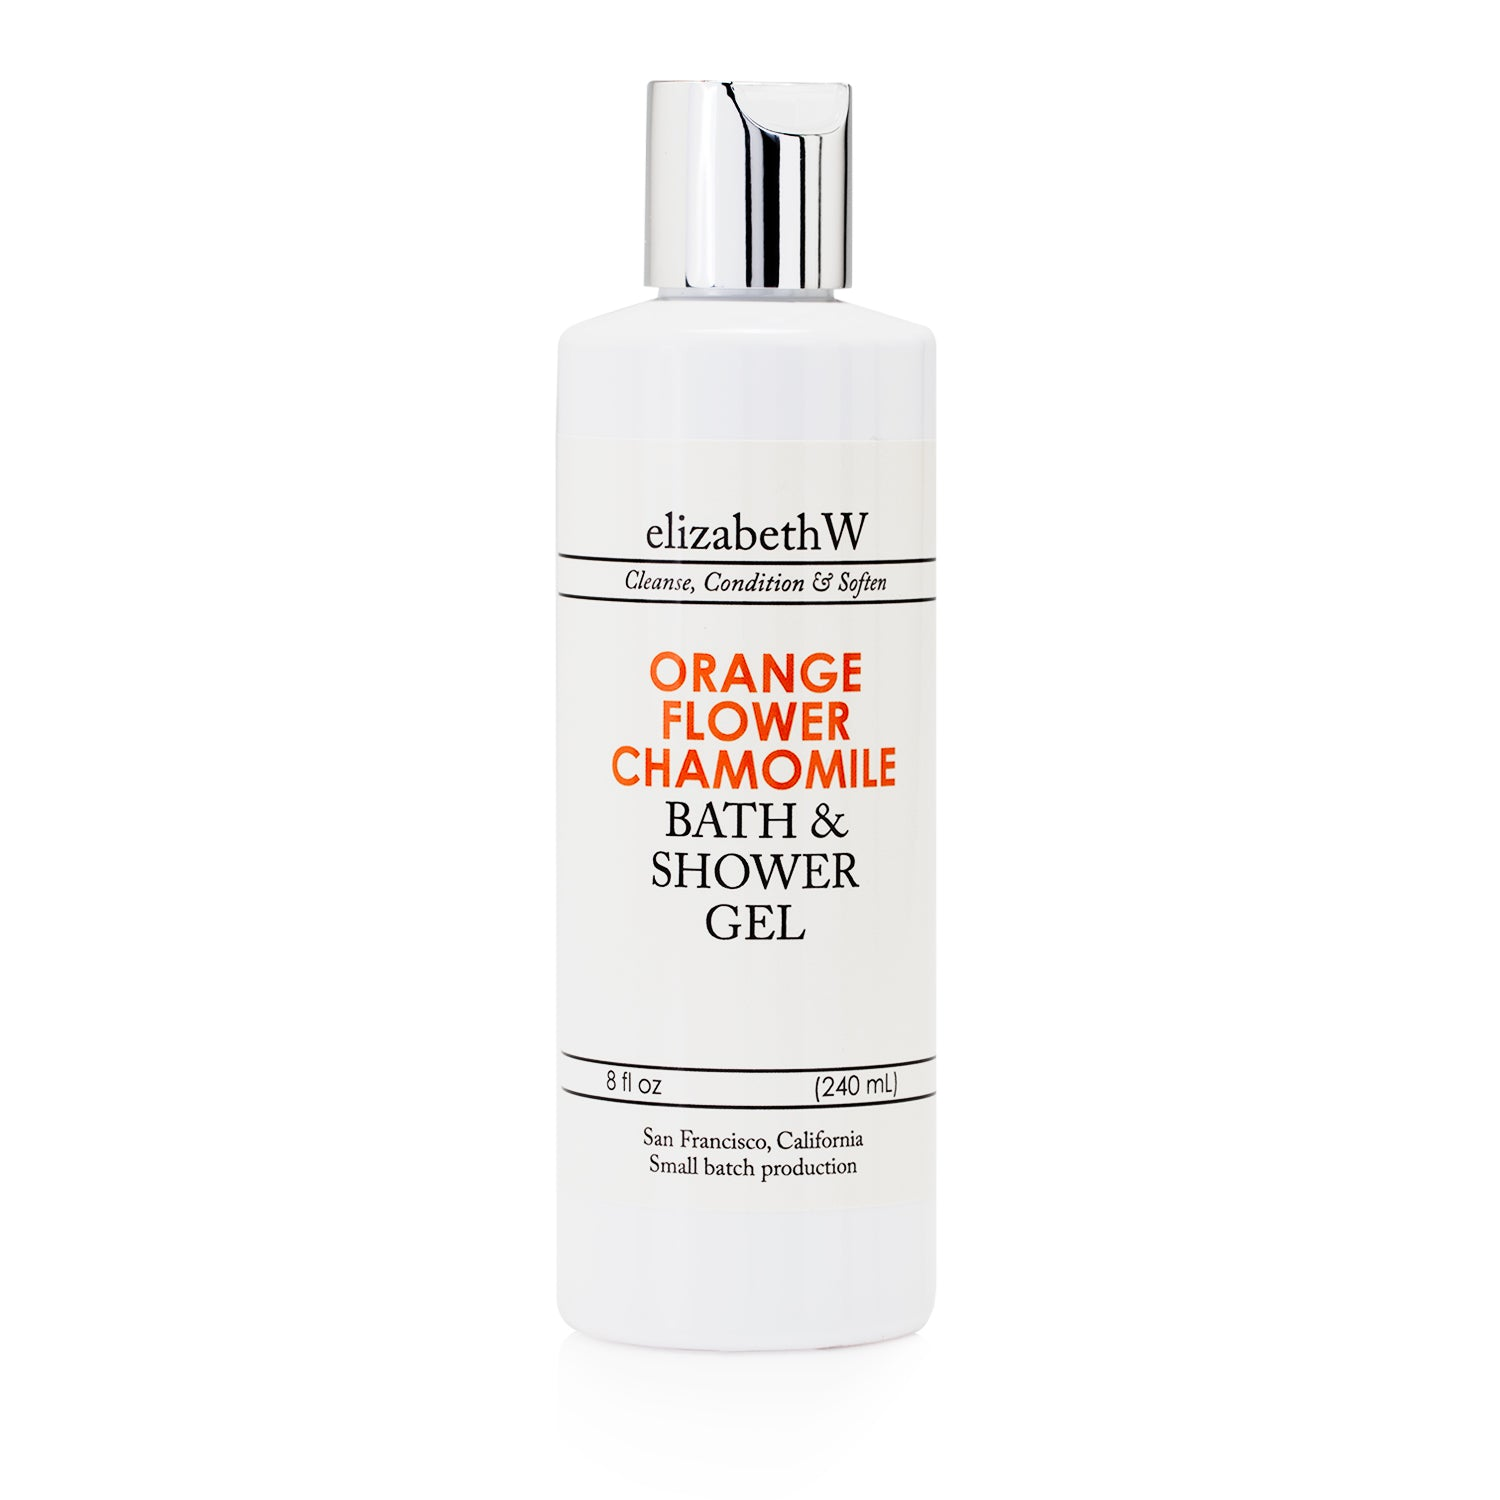 Orange Flower Chamomile Bath & Shower Gel